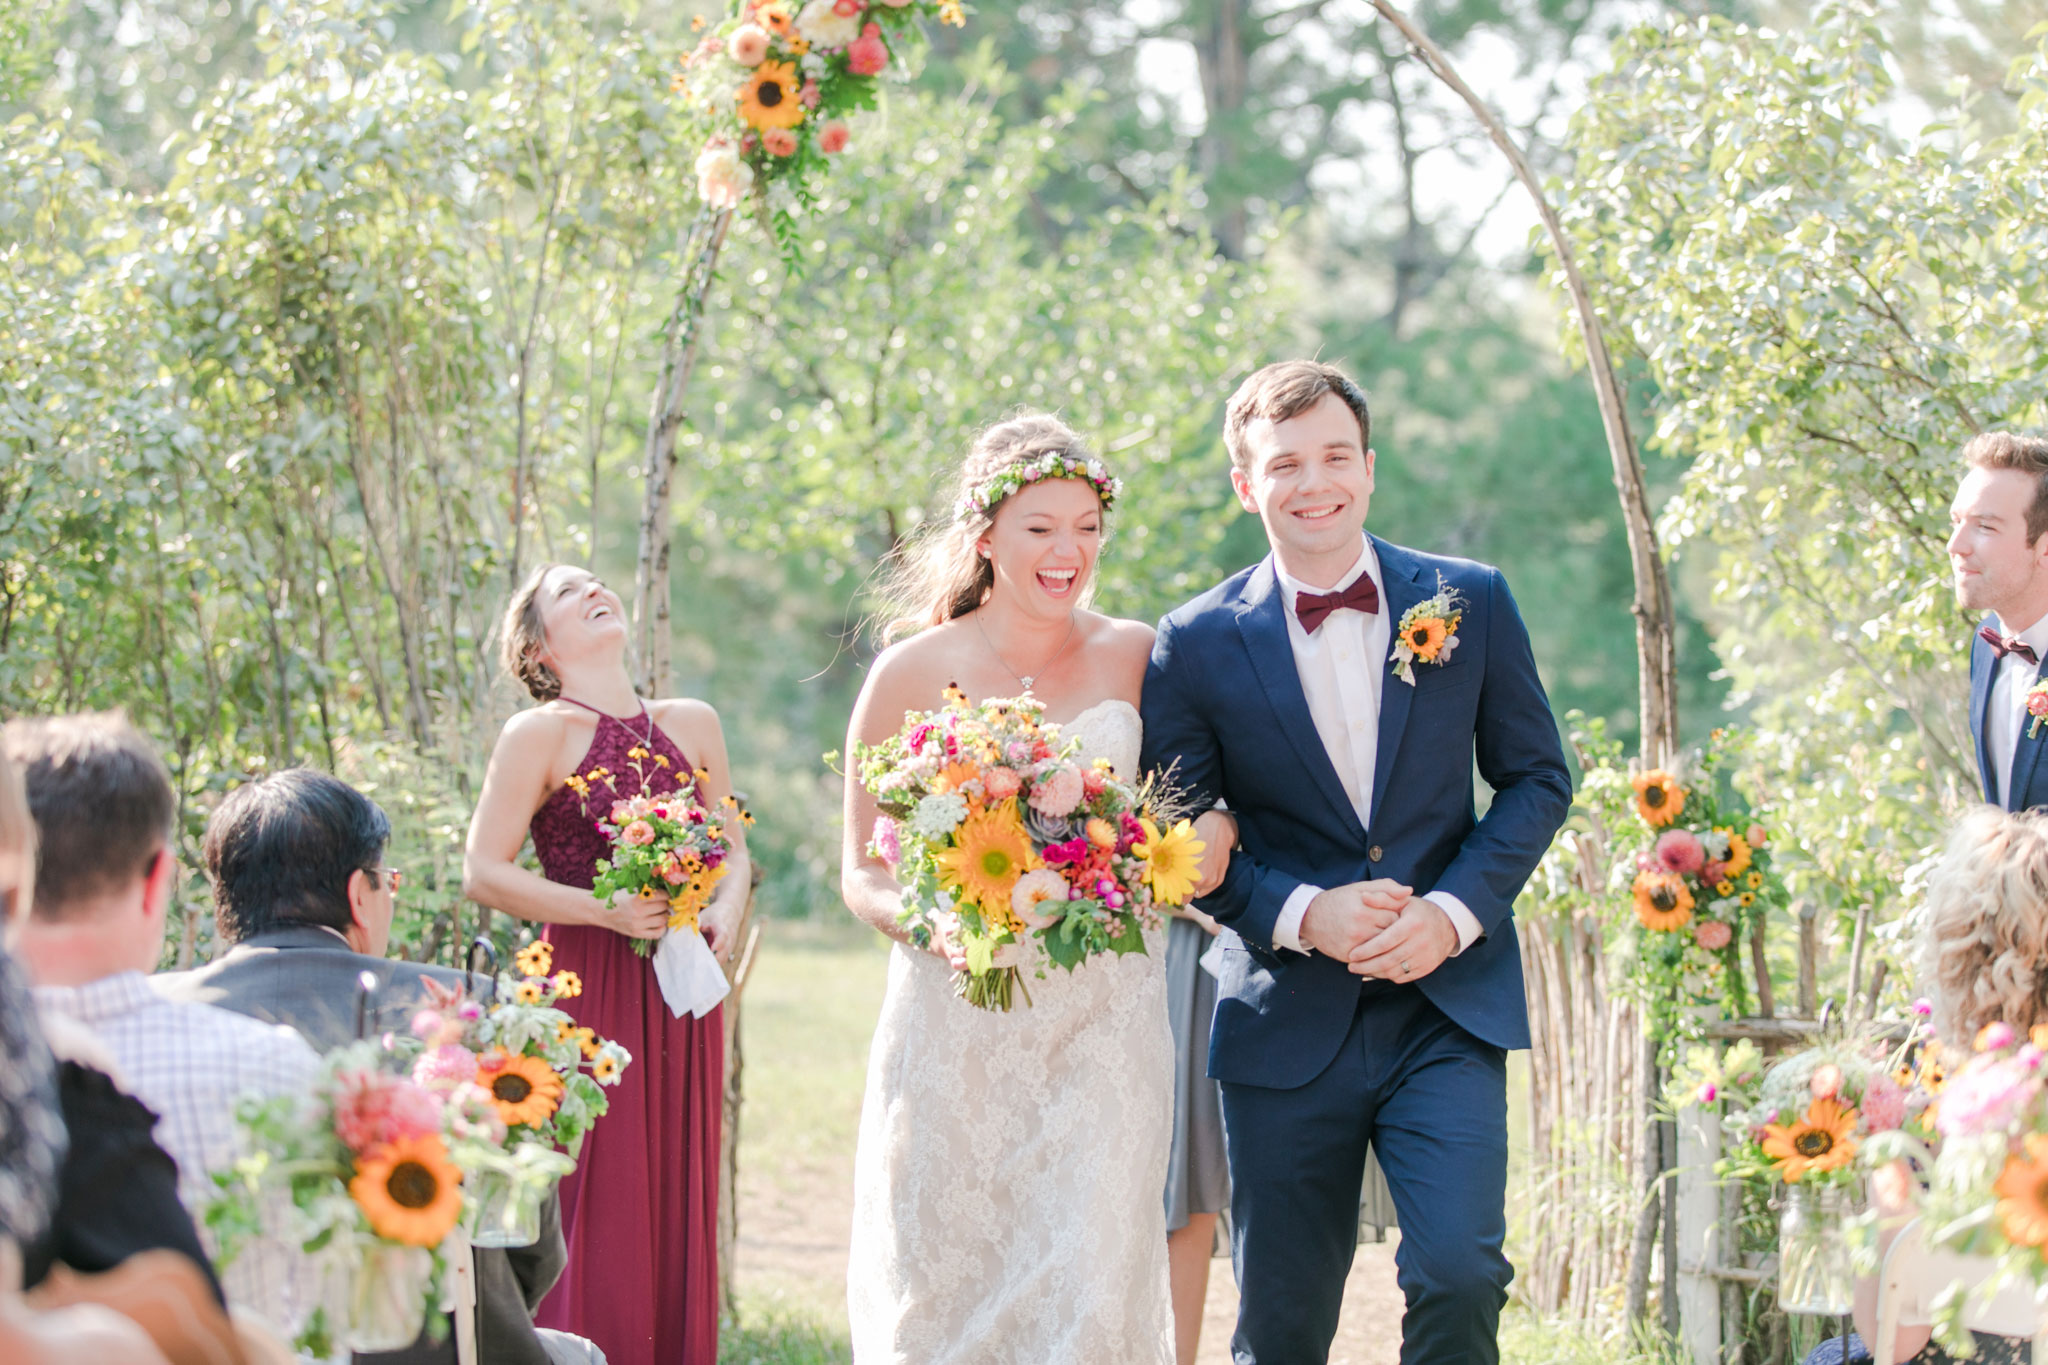 Happiness | A Boho Garden Wedding in Colorado